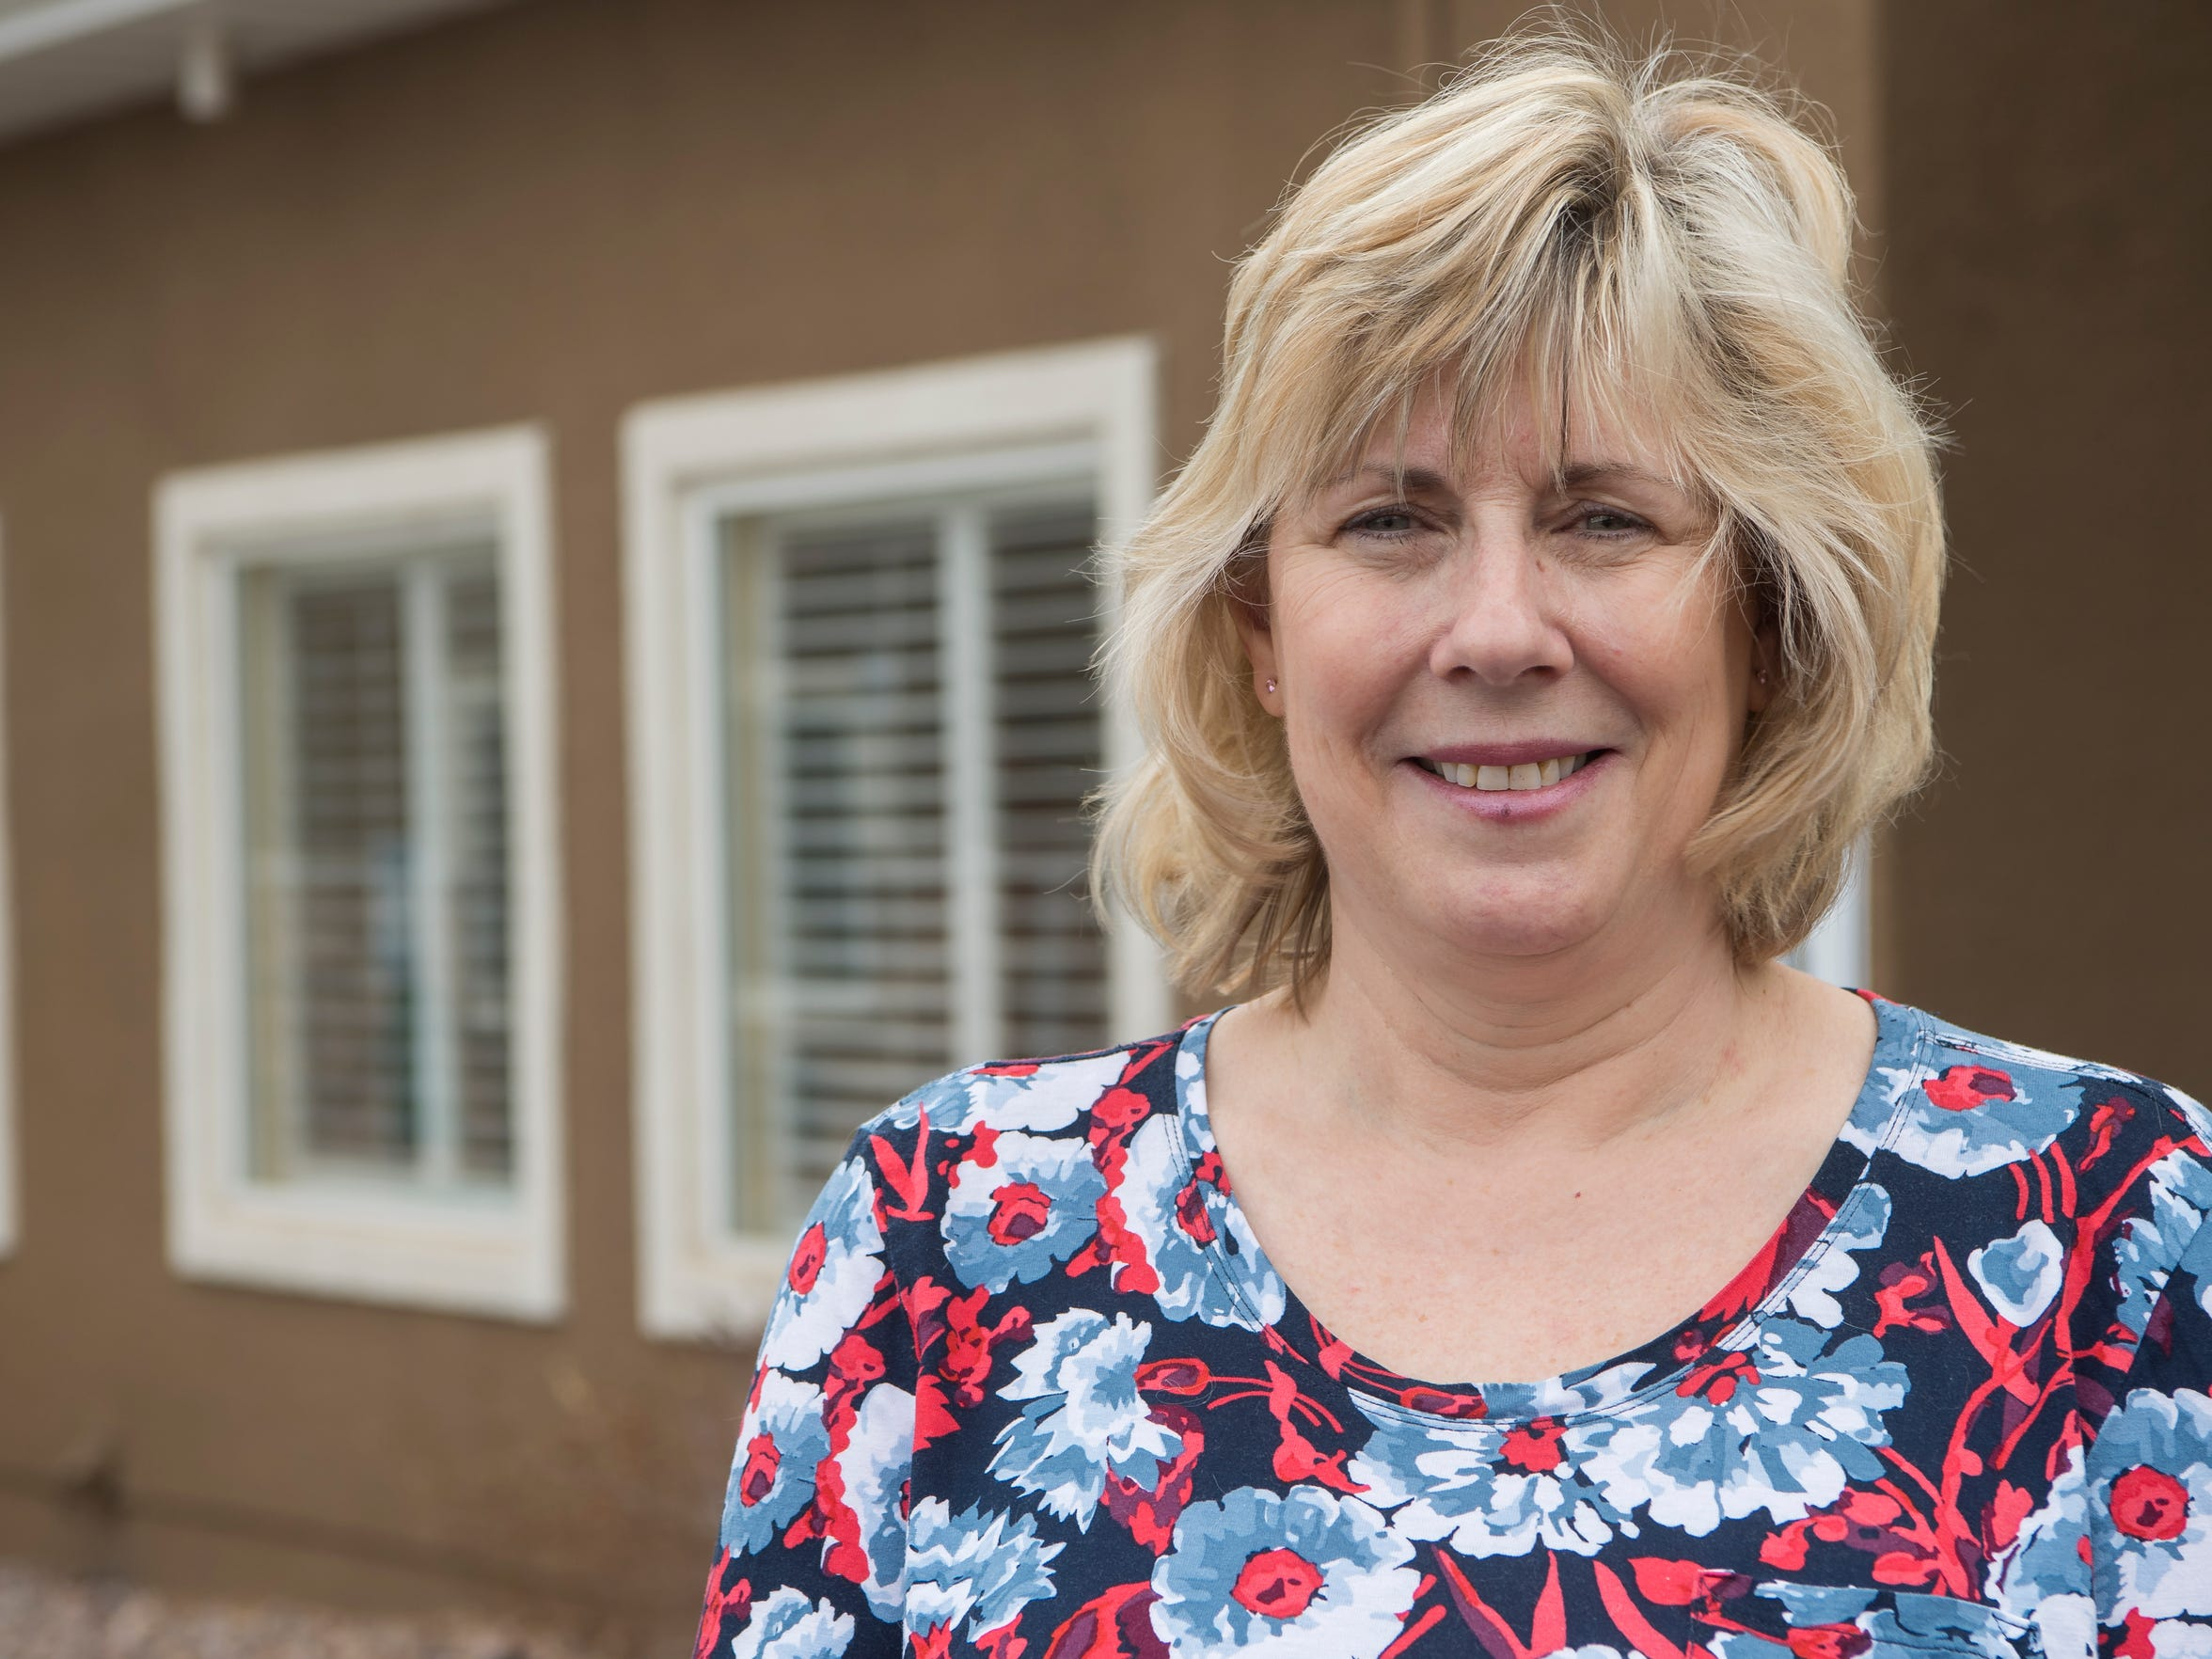 Kathy Kirkland smiles outside the Southern Utah retirement home Brookdale, where she found her birth mother after 60 years.